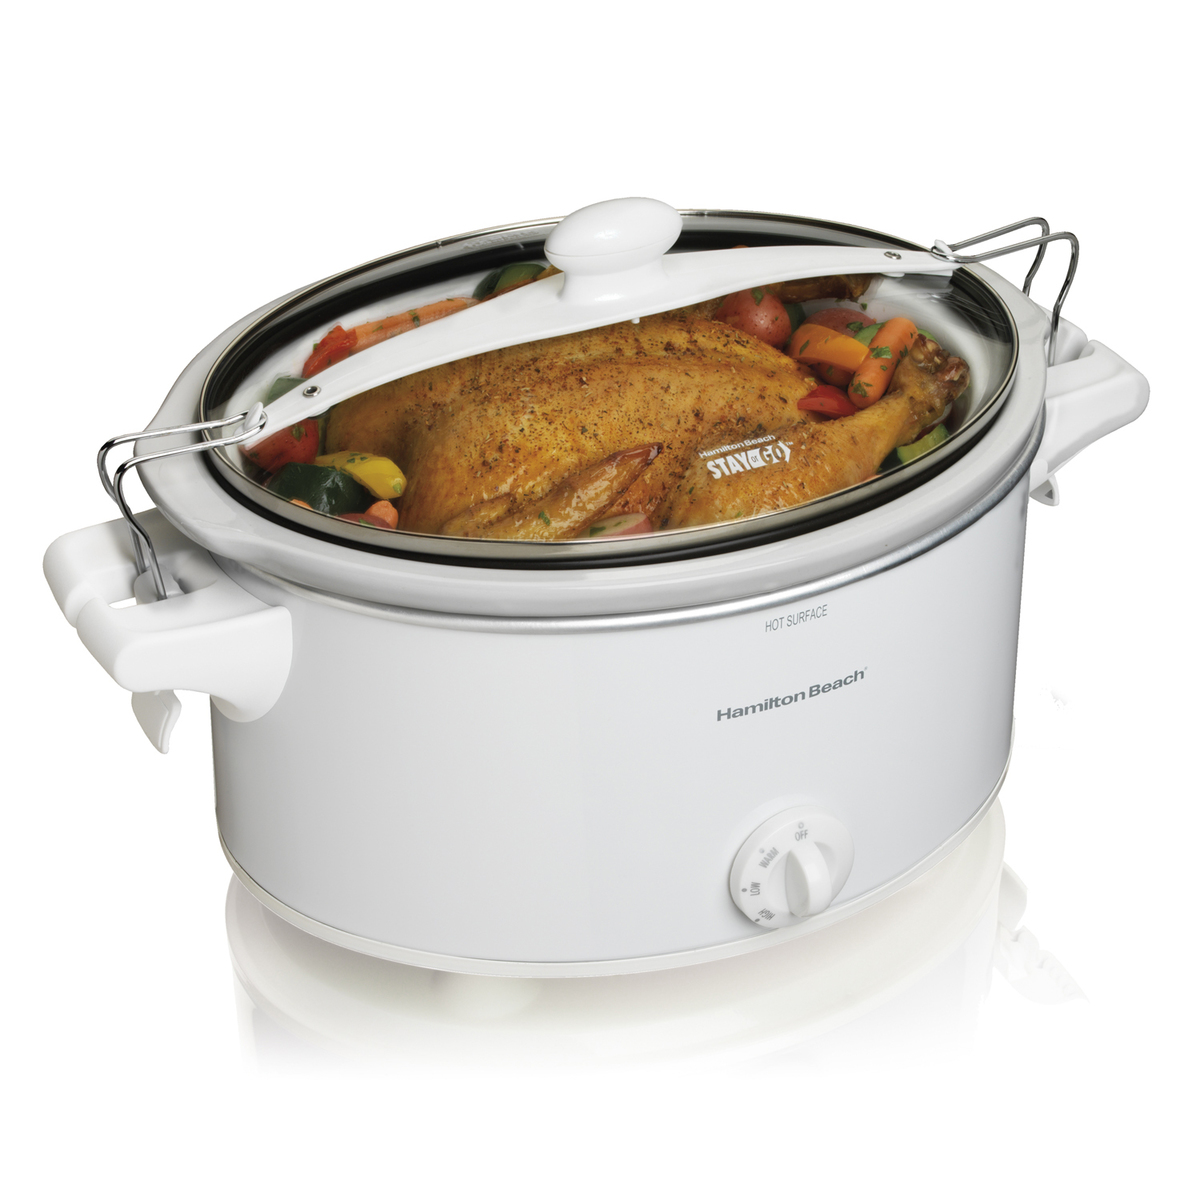 Stay or Go® 6 Quart Slow Cooker (33263)